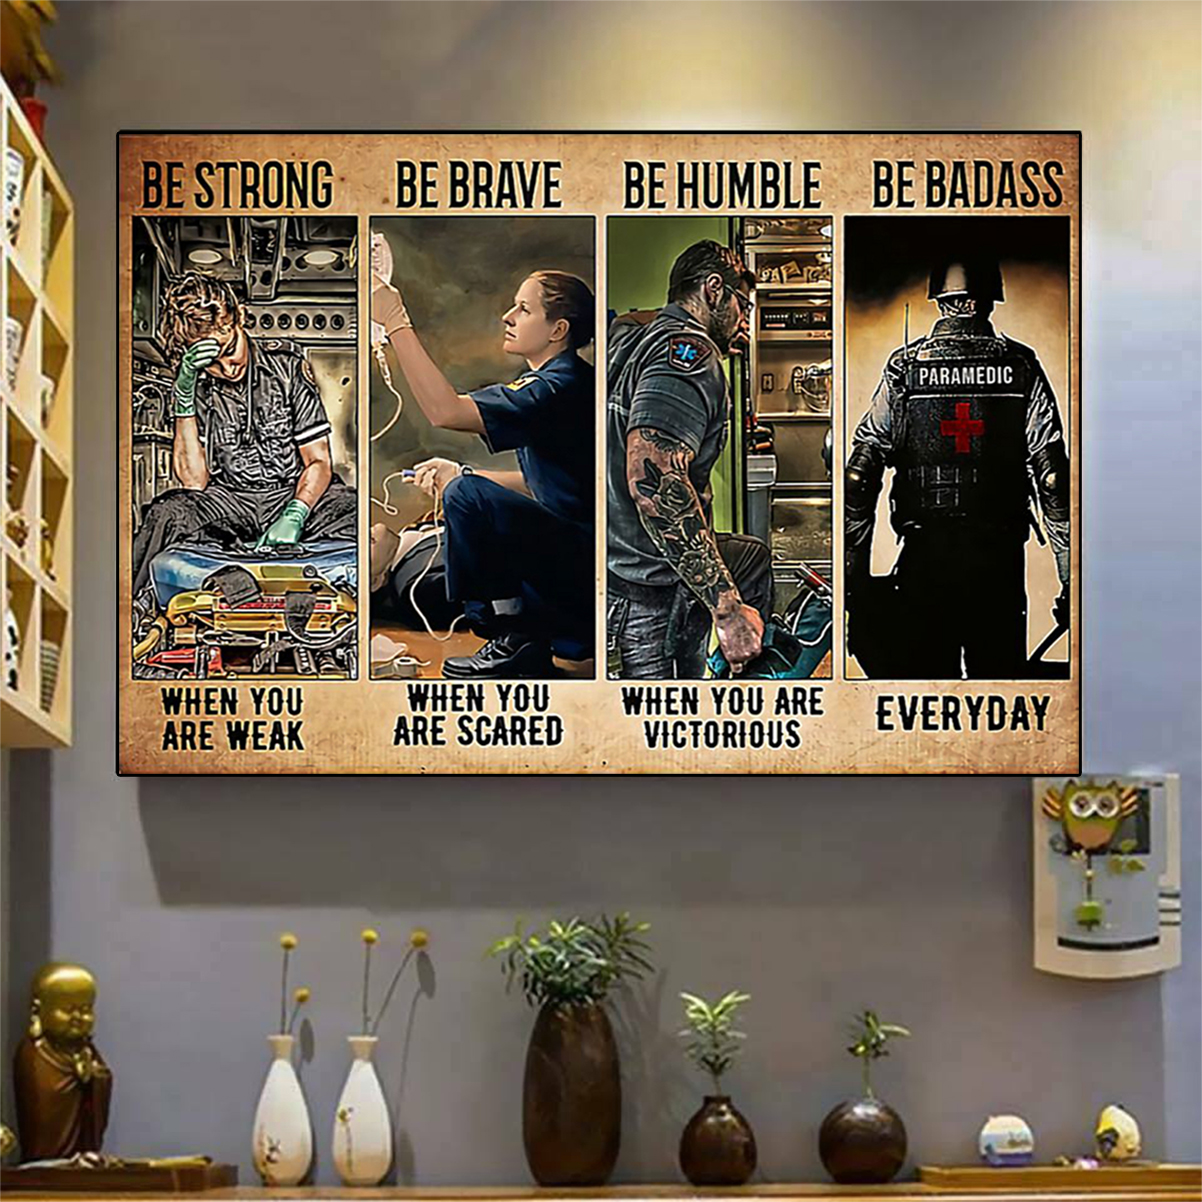 Paramedic be strong be brave be humble be badass poster A1